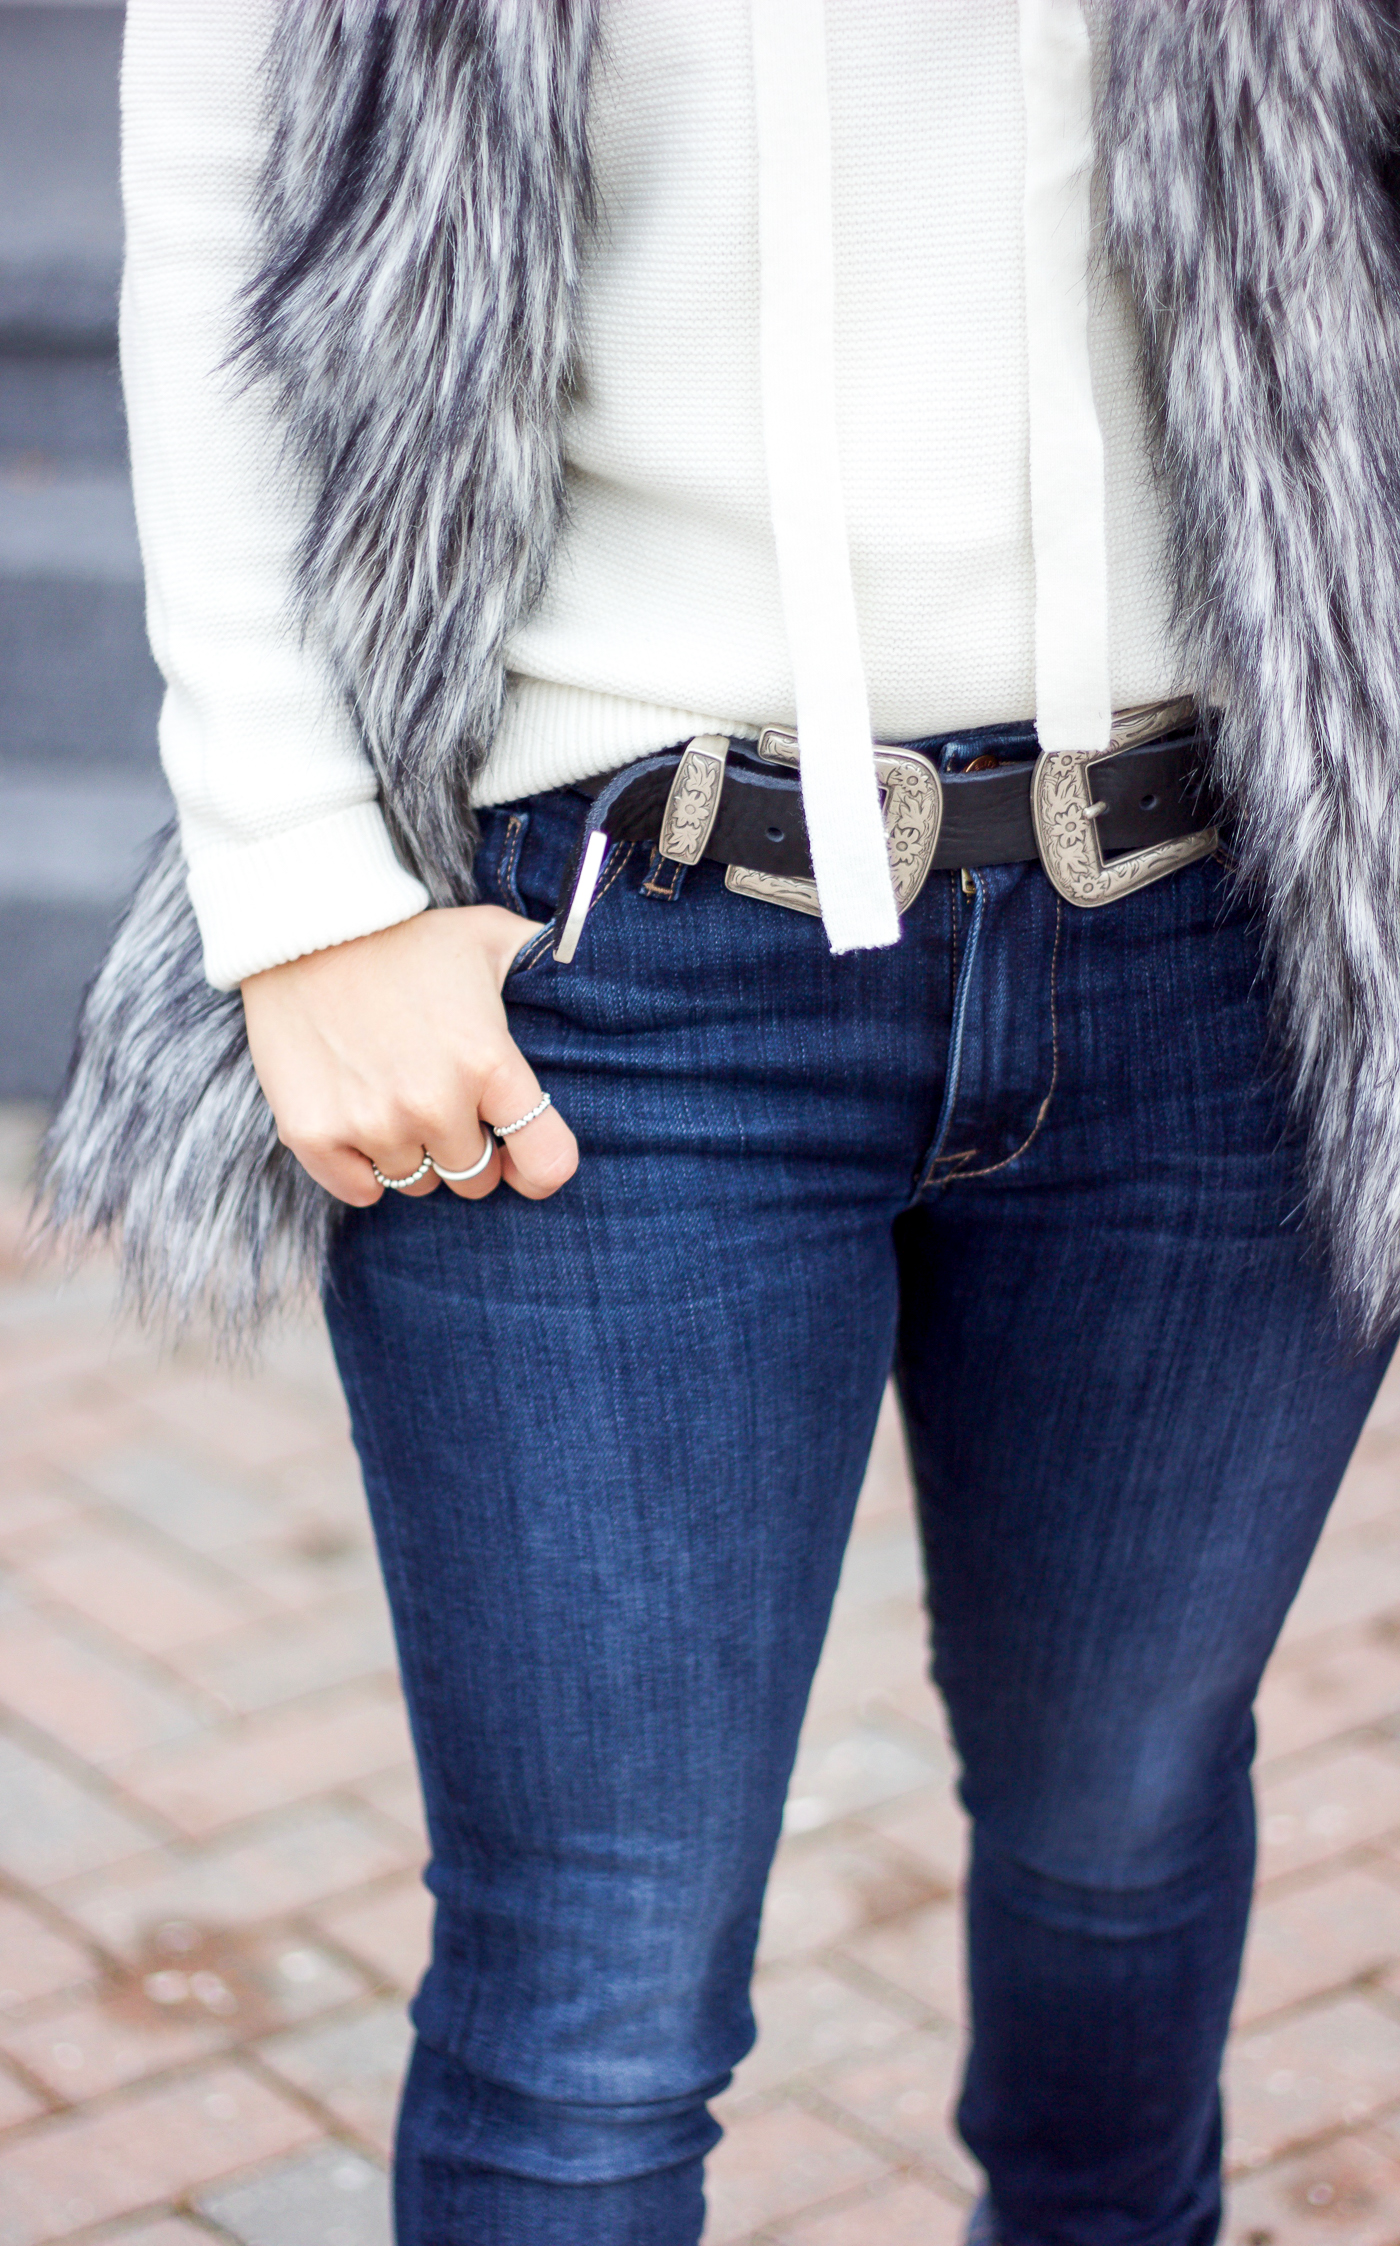 Toronto fashion blogger, Jackie Goldhar of Something About That is wearing Fidelity jeans with a double buckle belt from BRAVE Leather